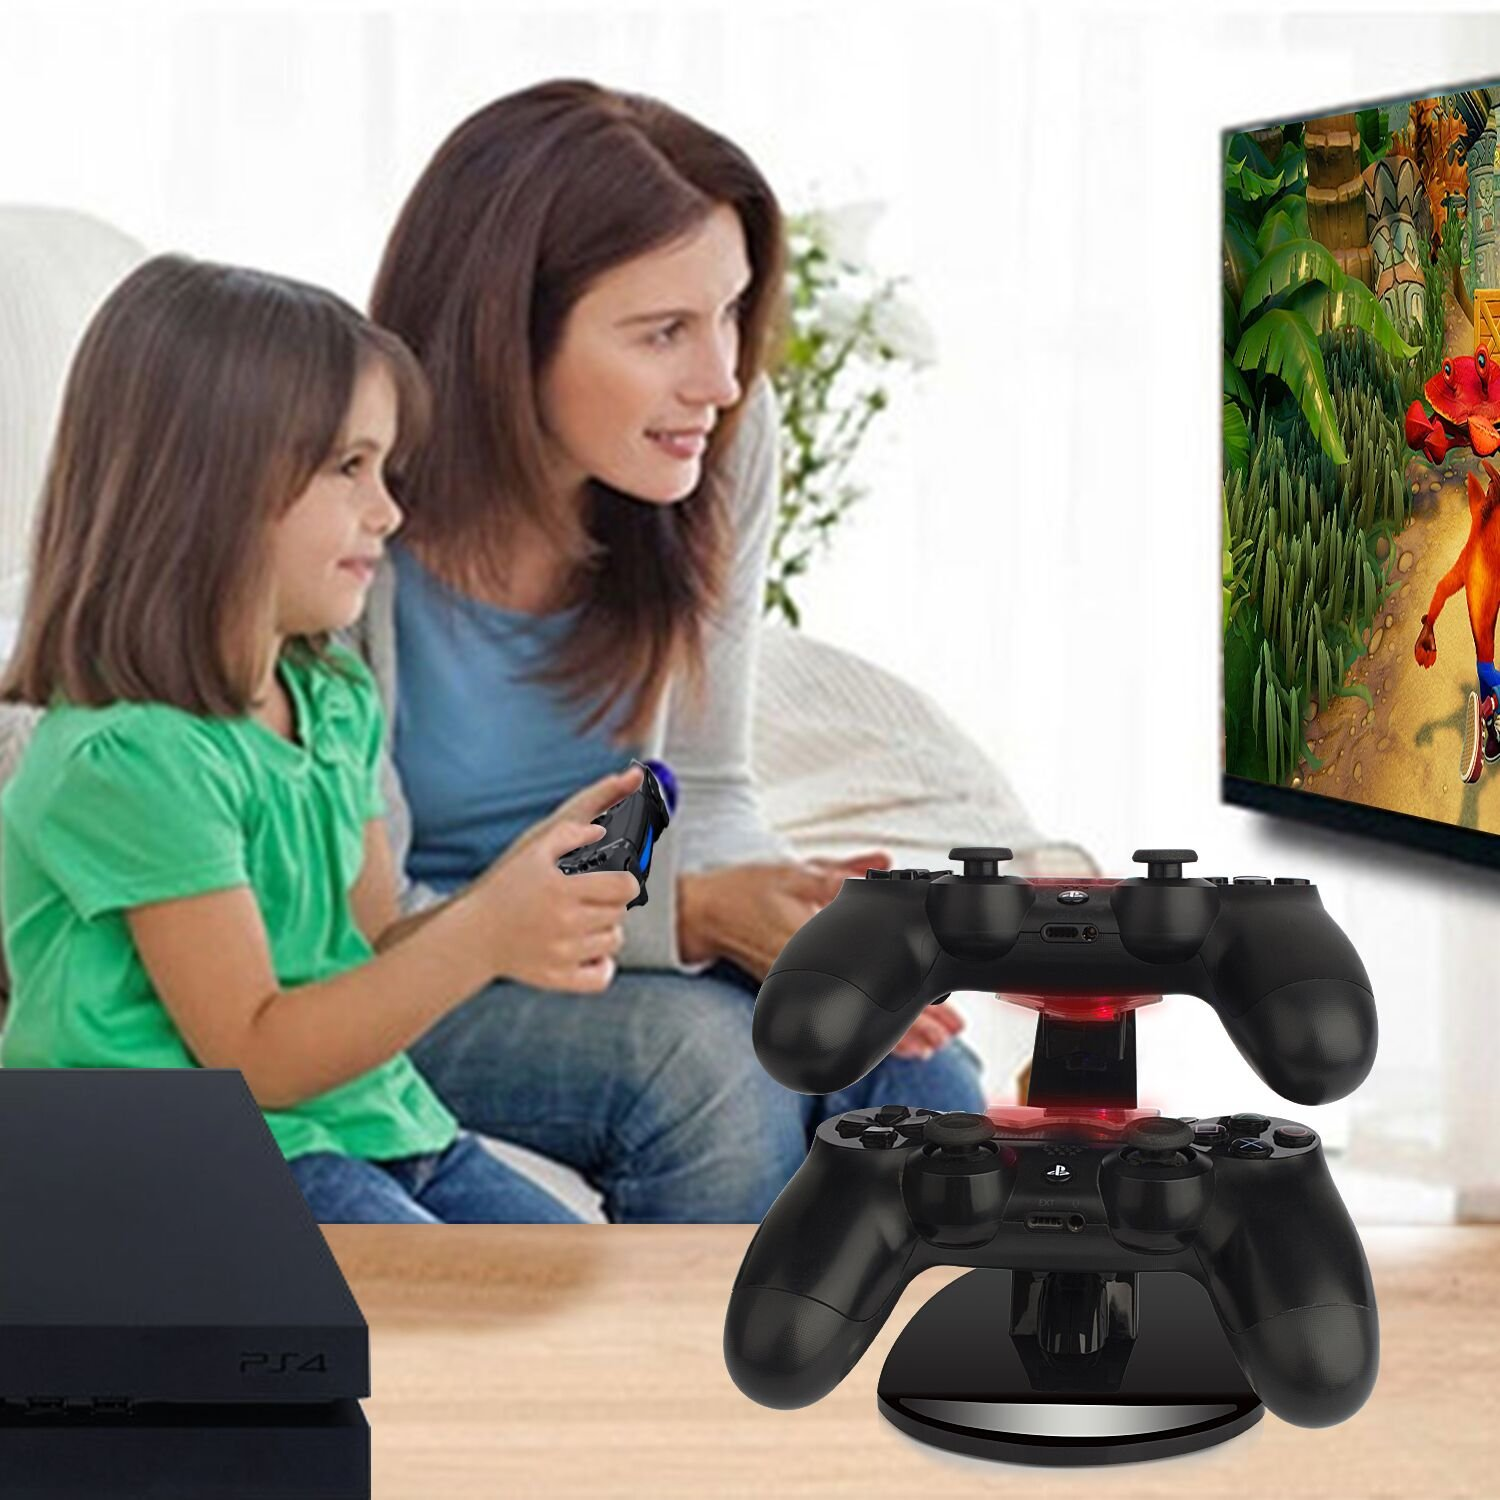 PS4 Controller Charger Dual USB Wireless PS4 Fast Charger Station with LED Indicator Playstation 4 Controller Charger Charging Station Stand for Sony Playstation 4 PS4/PS4 Pro/PS4 Slim Controller